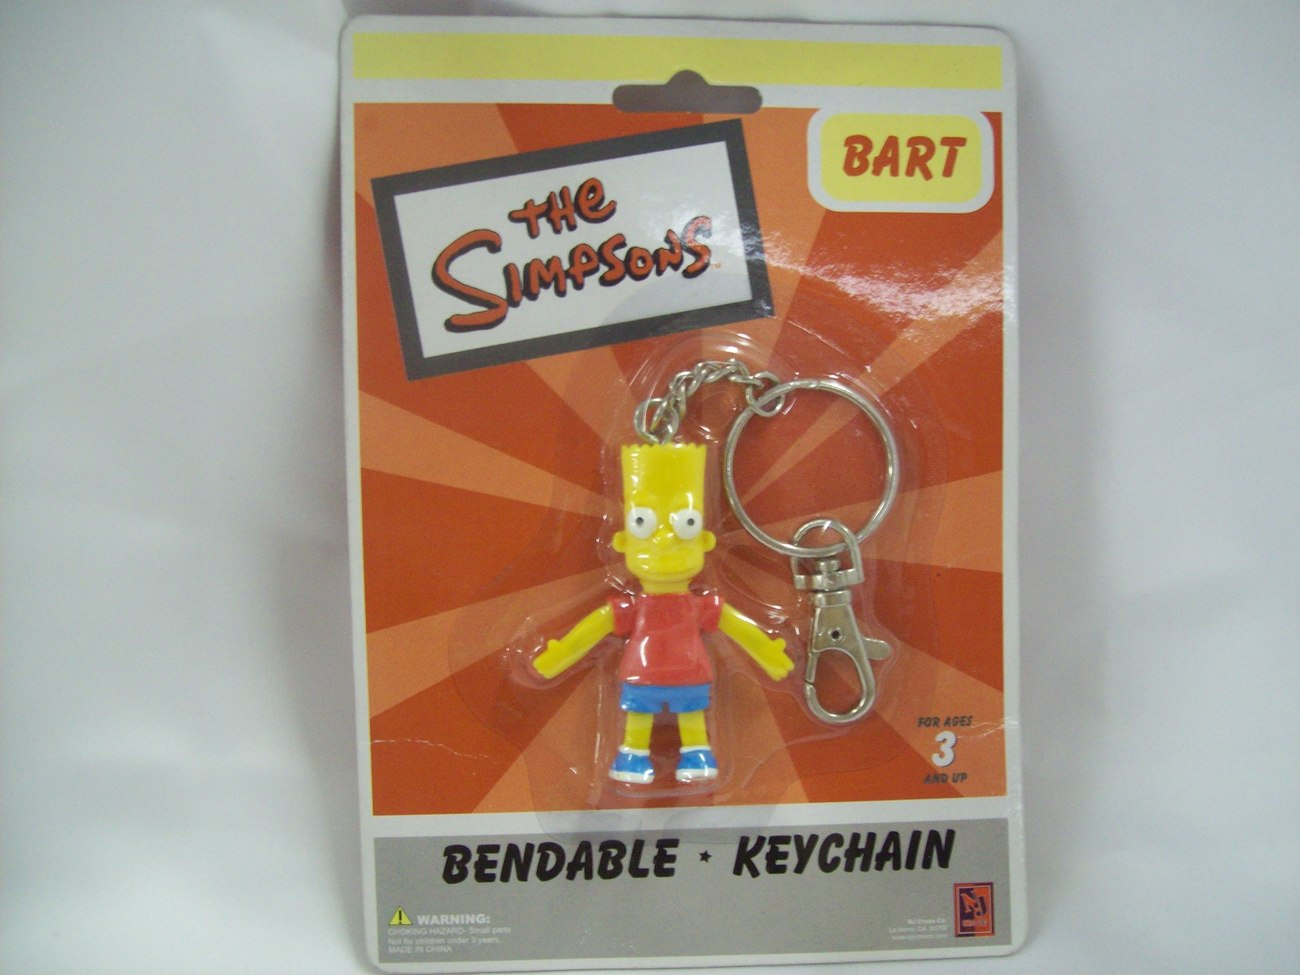 Bart Simpson Bendable Figure Keychain - New in Package